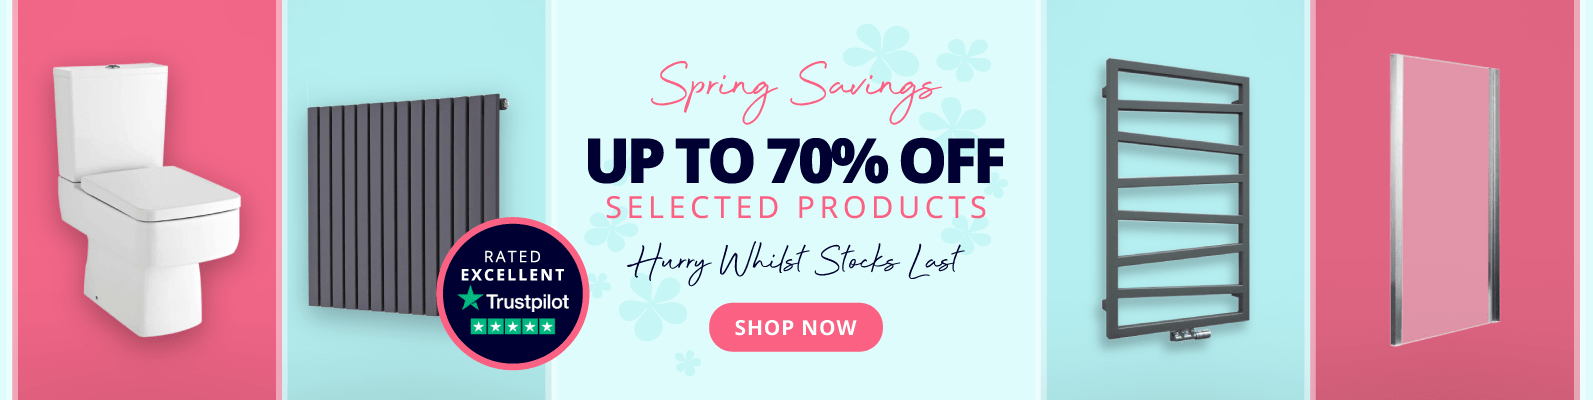 Spring Savings Up To 70% Off Selected Products Hurry Whilst Stocks Last! Shop now